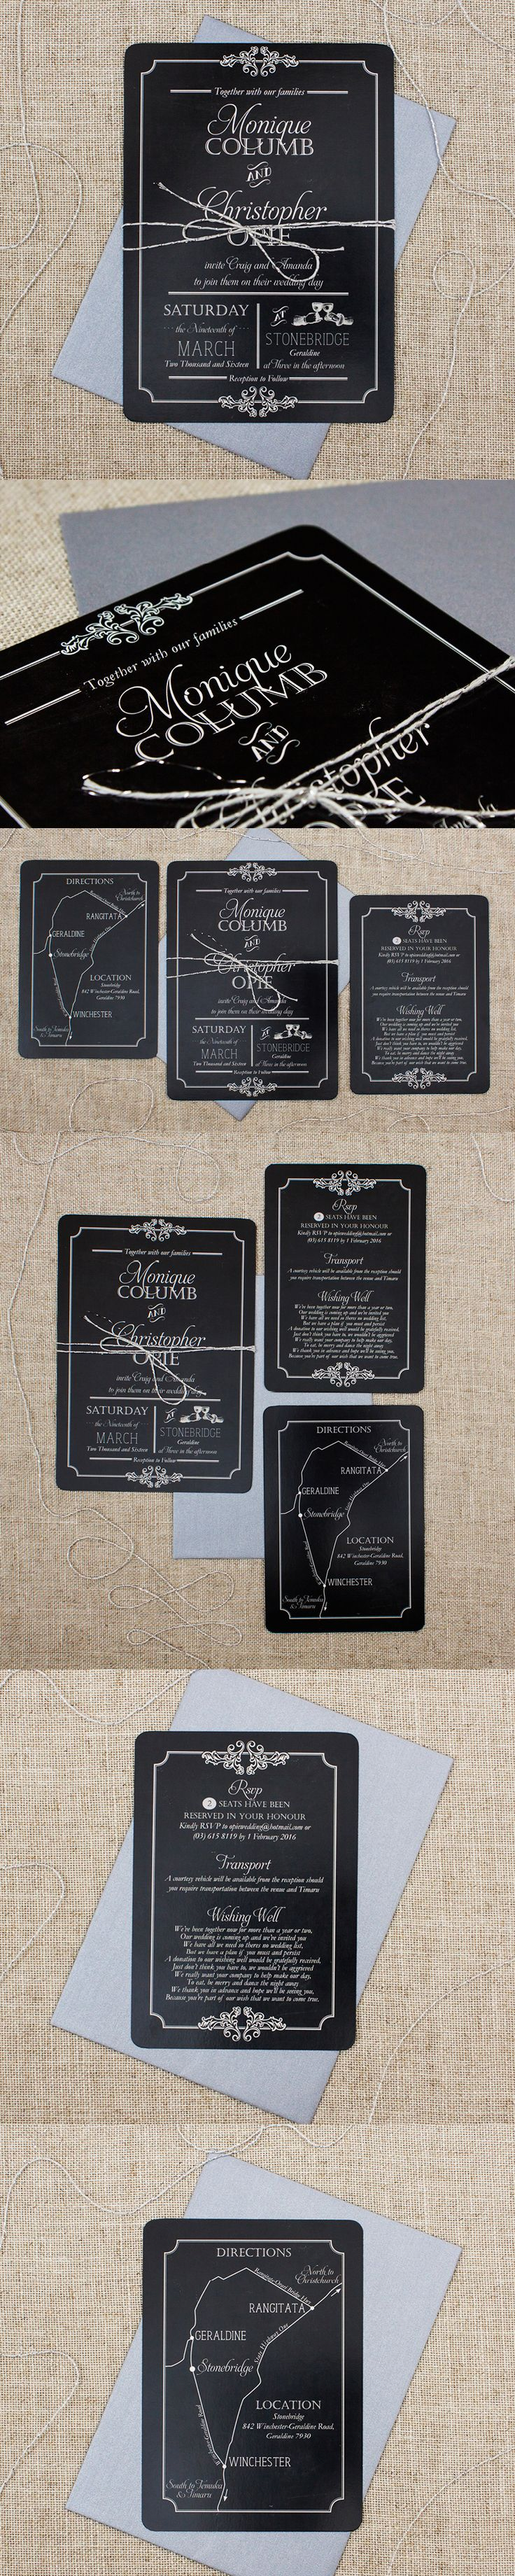 Vintage Chalkboard Wedding invitations with map to venue and rsvp card nz